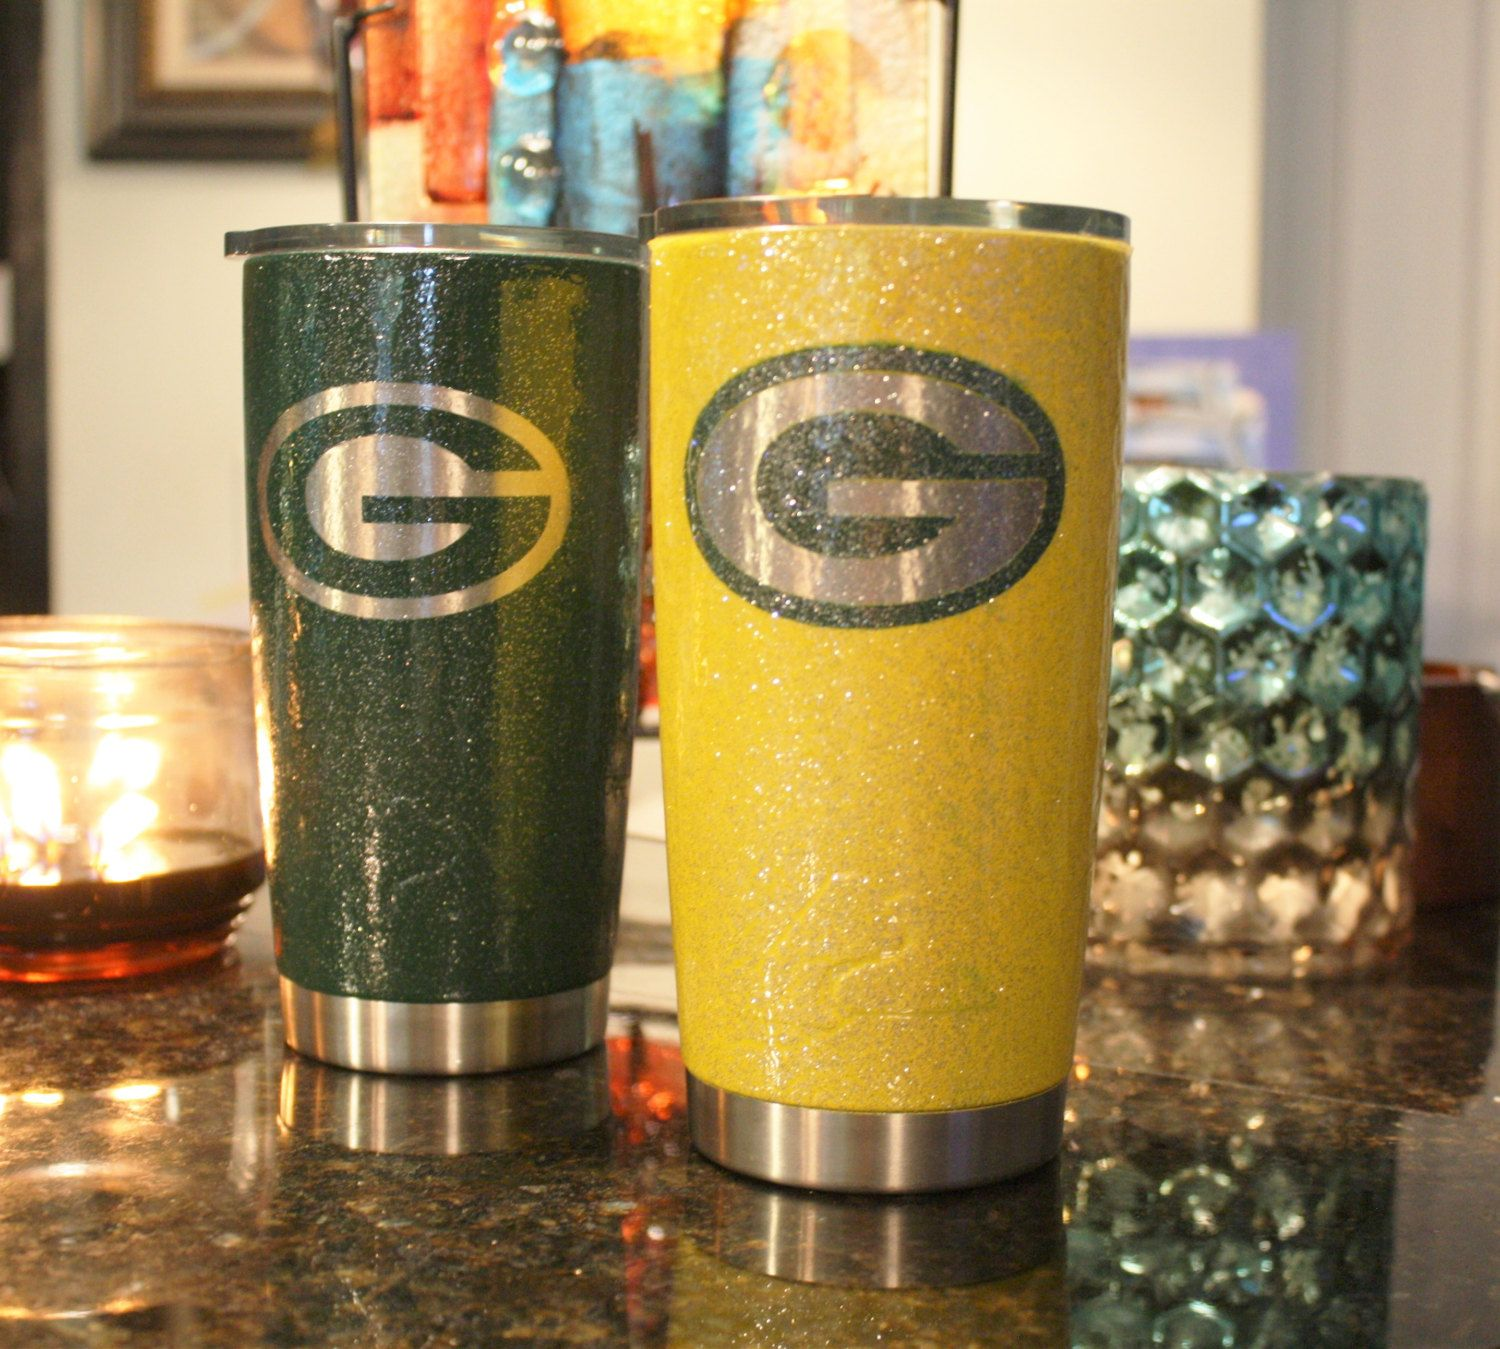 Ozark Trail Tumbler Green Bay Packers Ozark Trail Green Bay Packers Ozark Packers Ozark Trail Packers Ozark Green Bay Pack Packers Christmas Glitter Cups Ozark